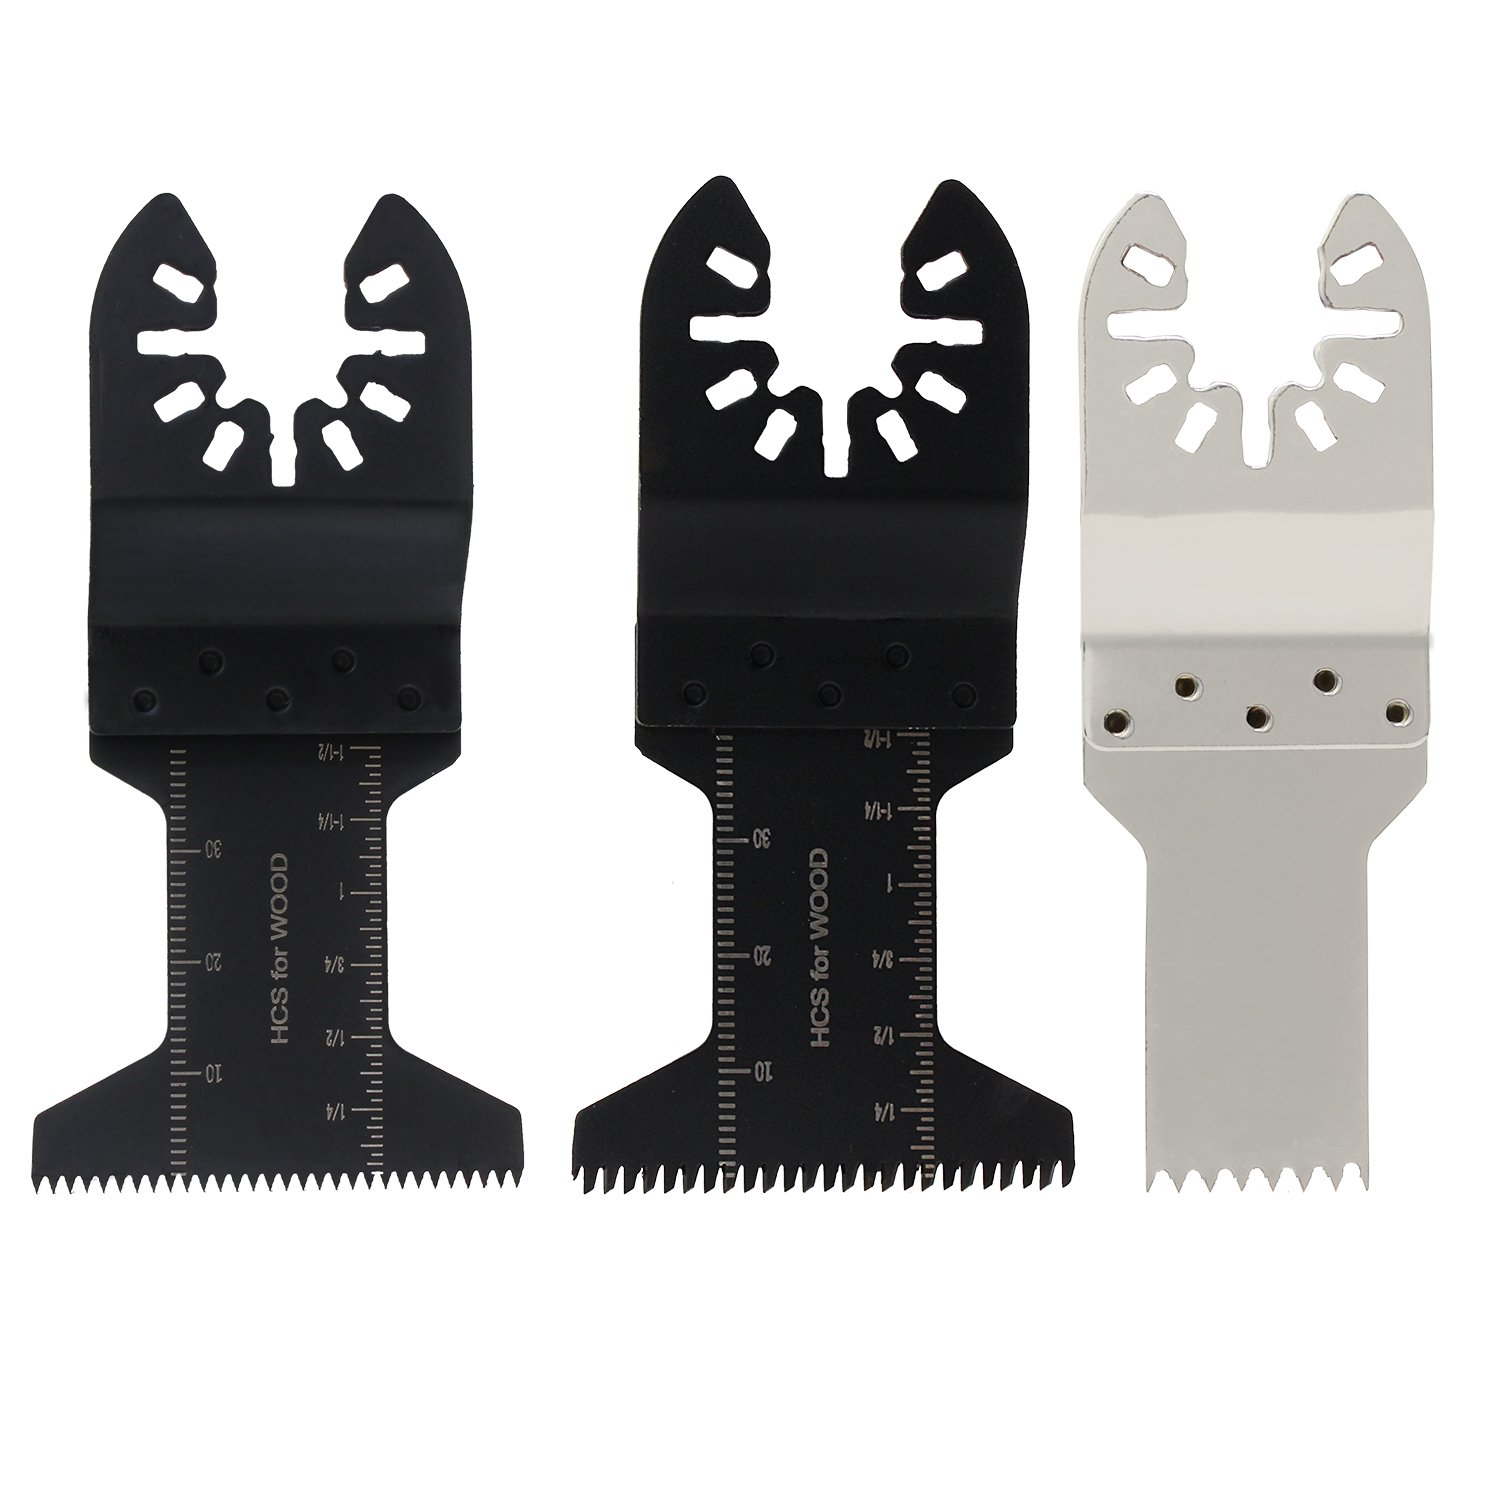 ESUMIC 15Pcs Oscillating Saw Blade Grinding Rasp Kit for RockWell Sonicrafter Work Oscillating Multitool Accesory by ESUMIC (Image #2)